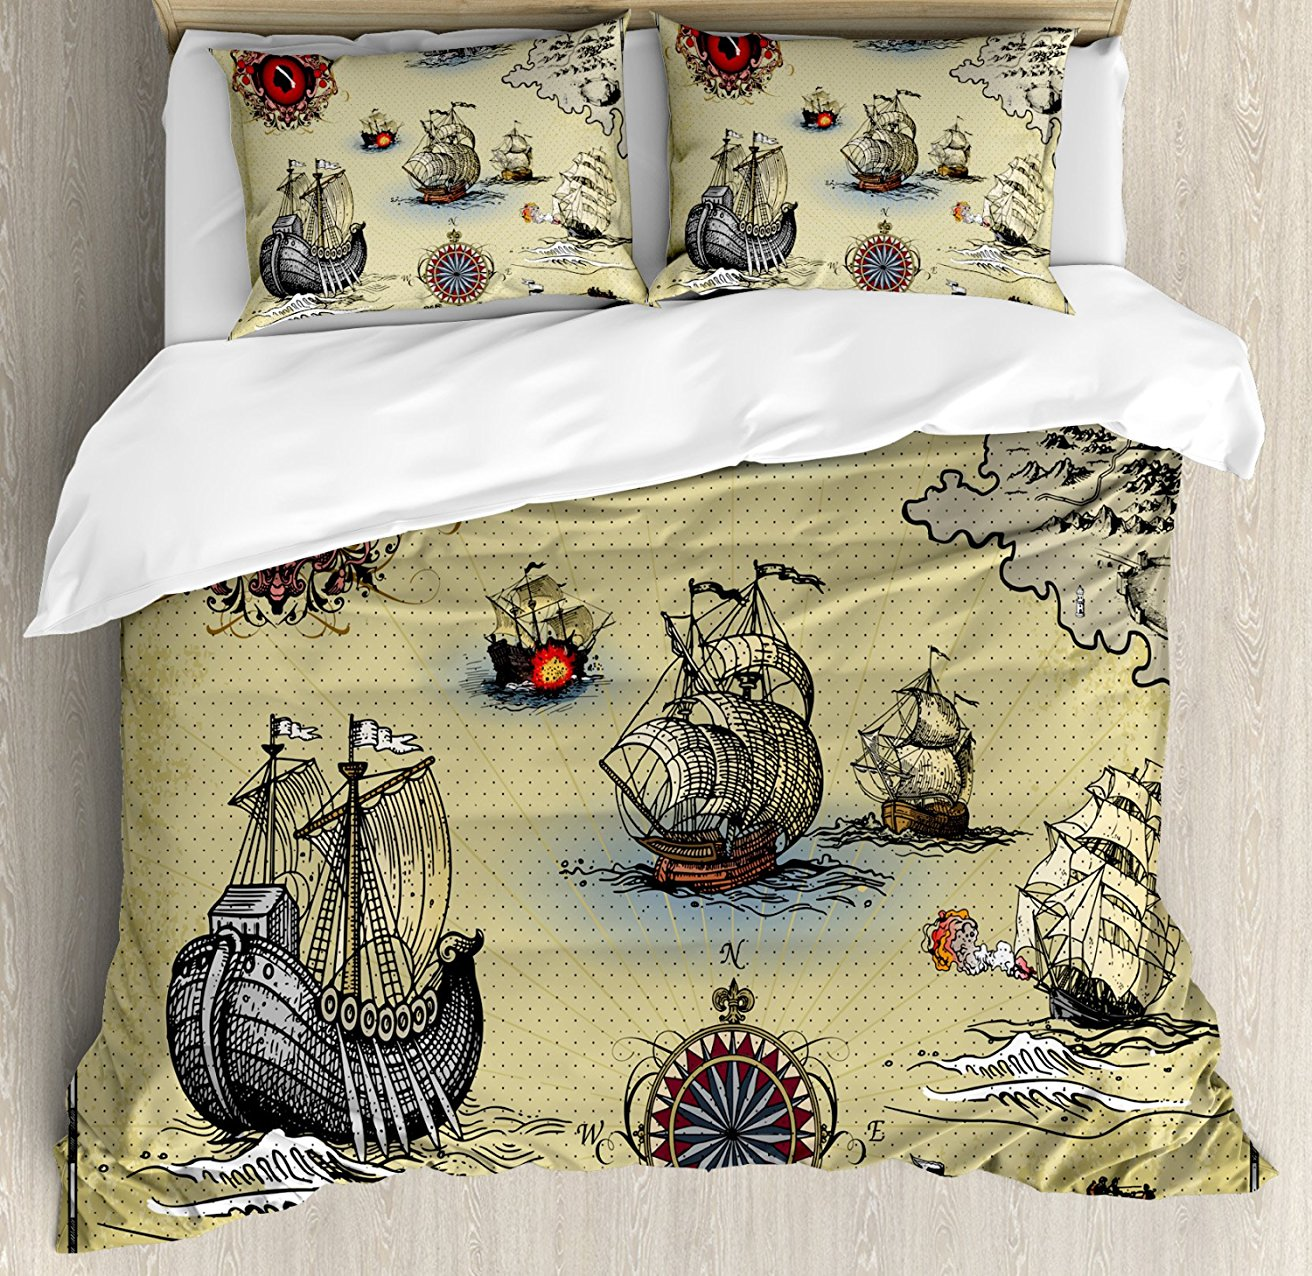 Compass Duvet Cover Set Antique Old Plan Discovery Ship Pirate Wave Compass Navigation Geography Theme 4 Piece Bedding SetCompass Duvet Cover Set Antique Old Plan Discovery Ship Pirate Wave Compass Navigation Geography Theme 4 Piece Bedding Set